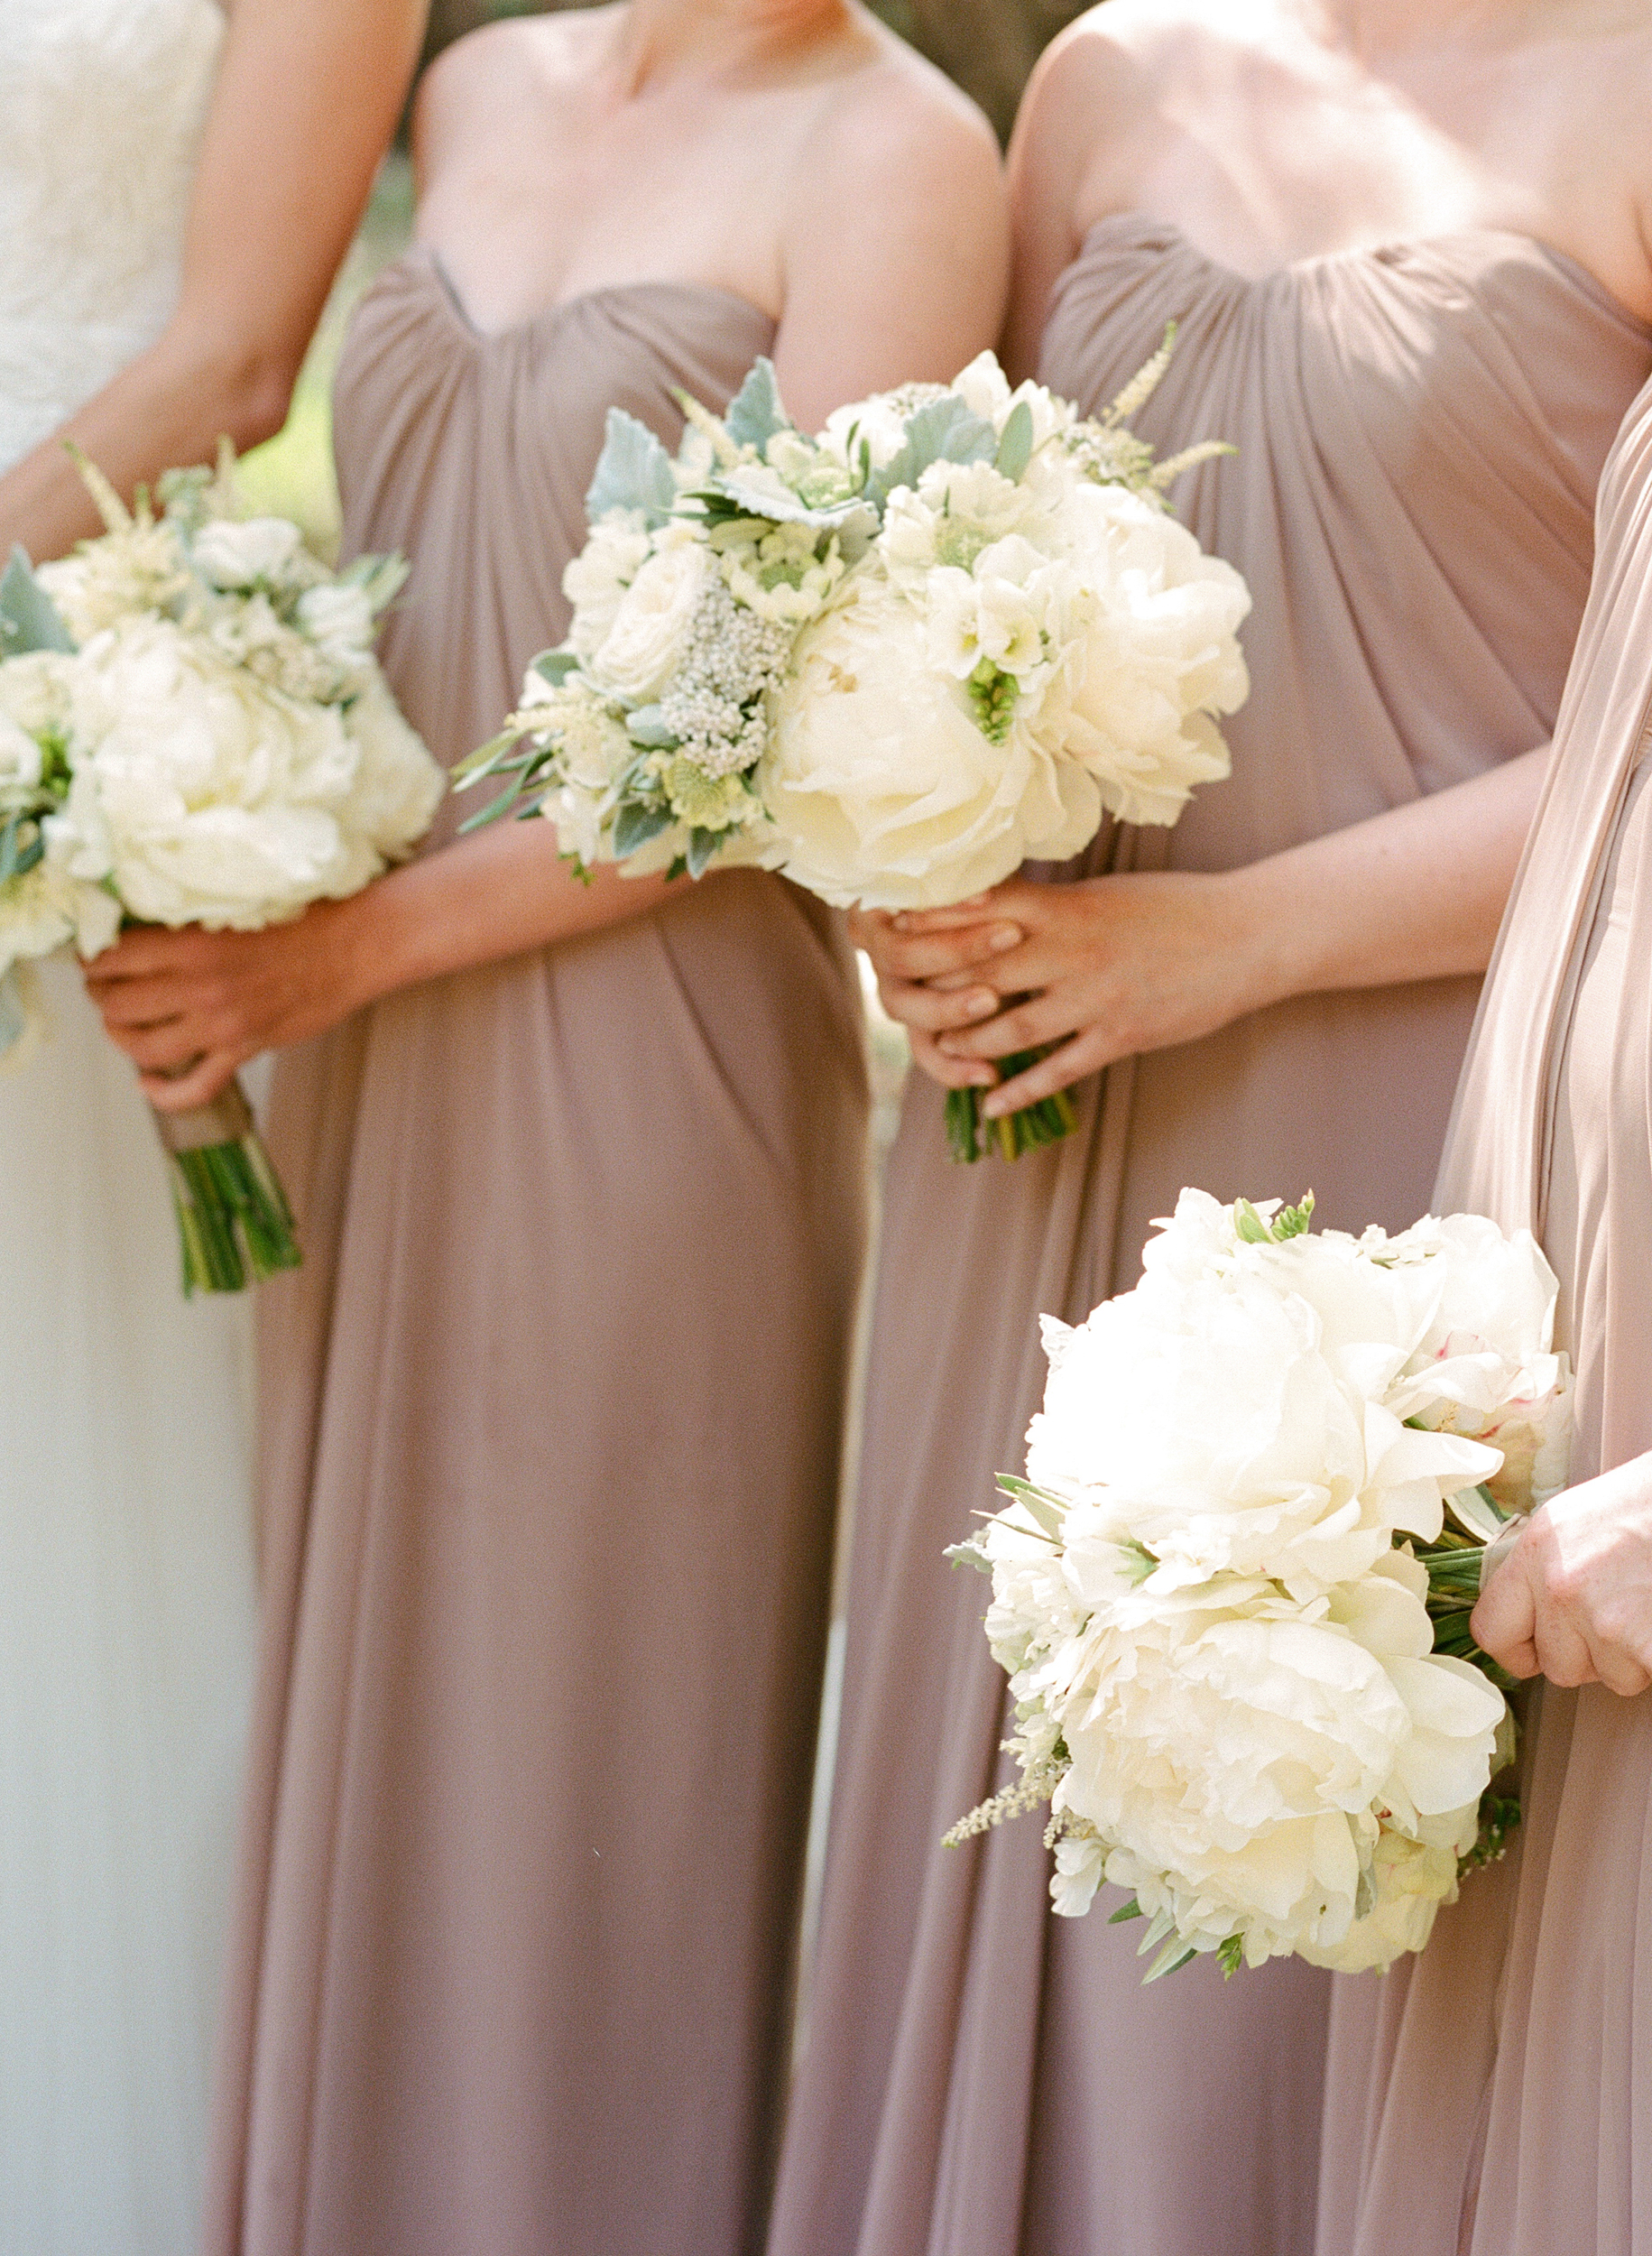 The bridesmaids, dressed in taupe, strapless gowns hold bouquets of roses and peonies matching the bride's; photo by Sylvie Gil